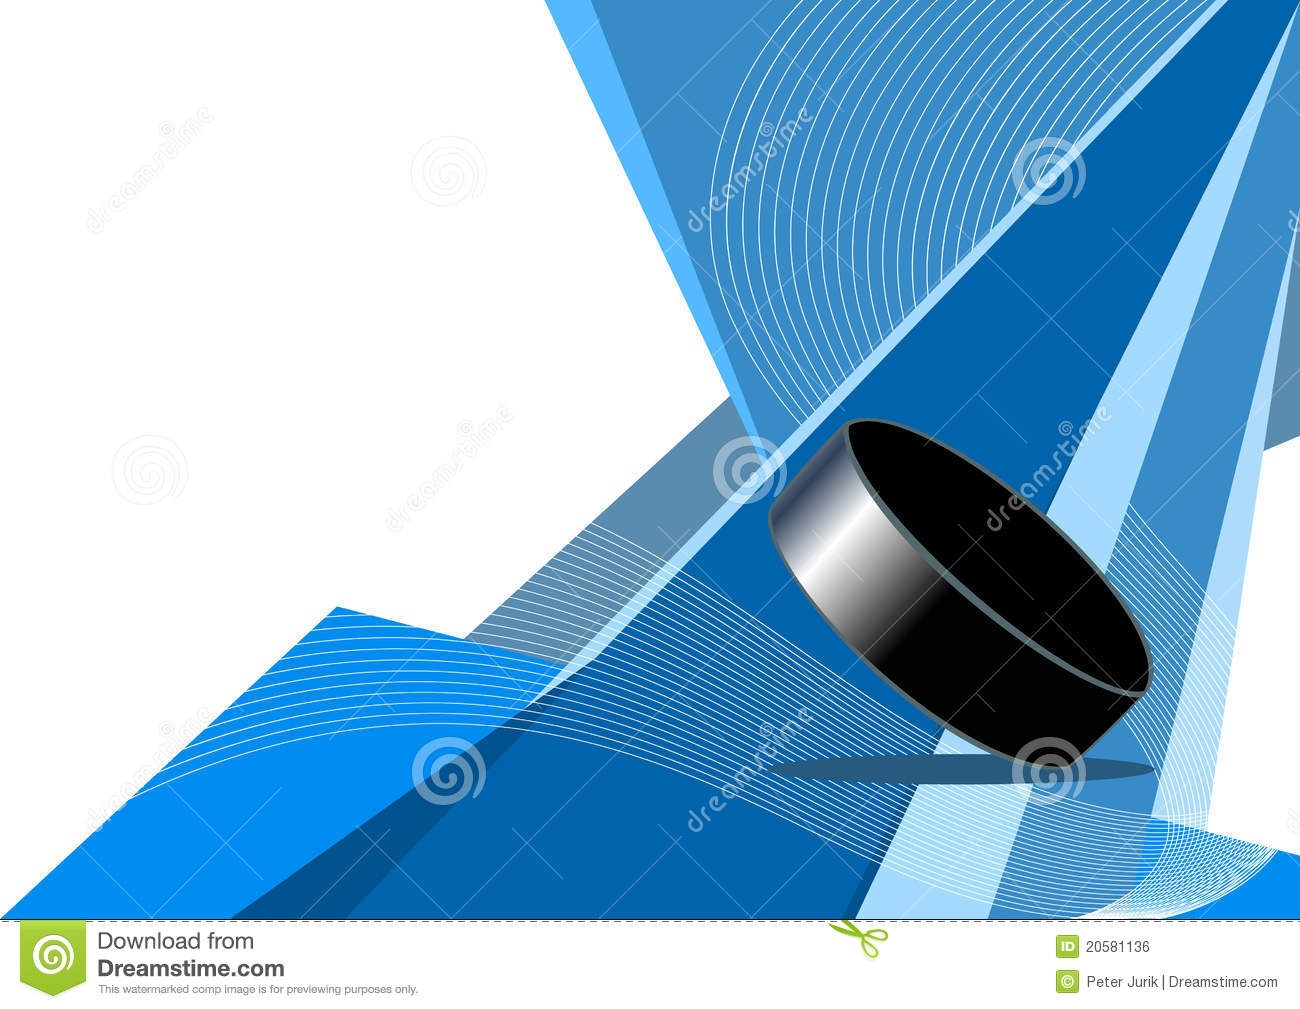 Abstract Sports Background Royalty Free Stock Image: Ice Hockey, Abstract Design Royalty Free Stock Image